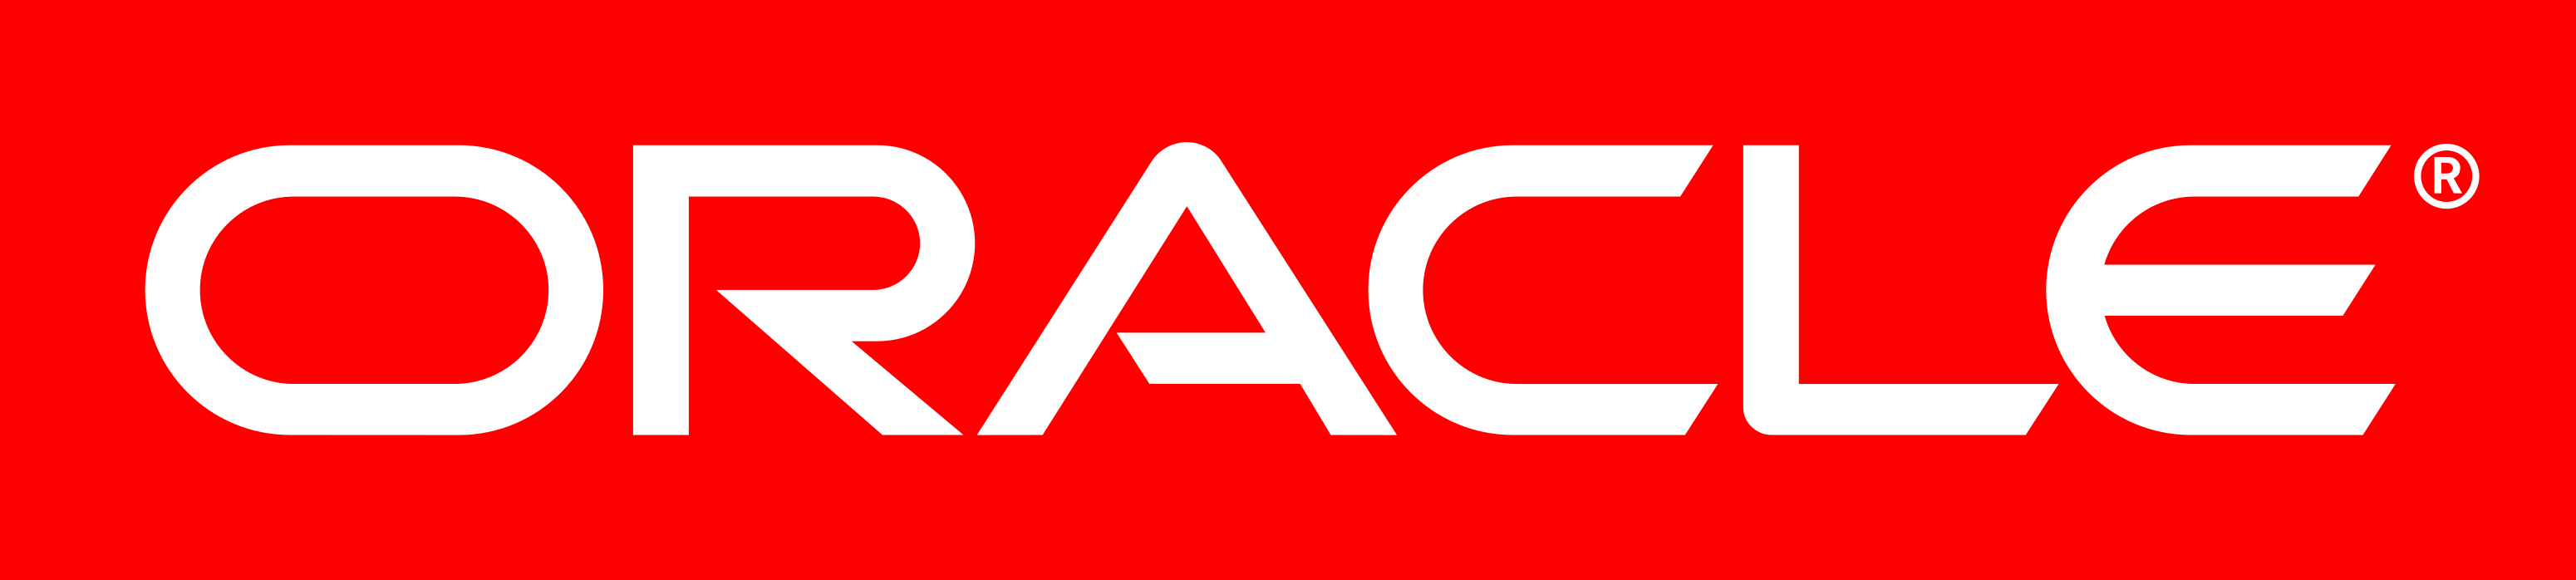 oracle logo 3 - Oracle Logo - Oracle Corporation Logo